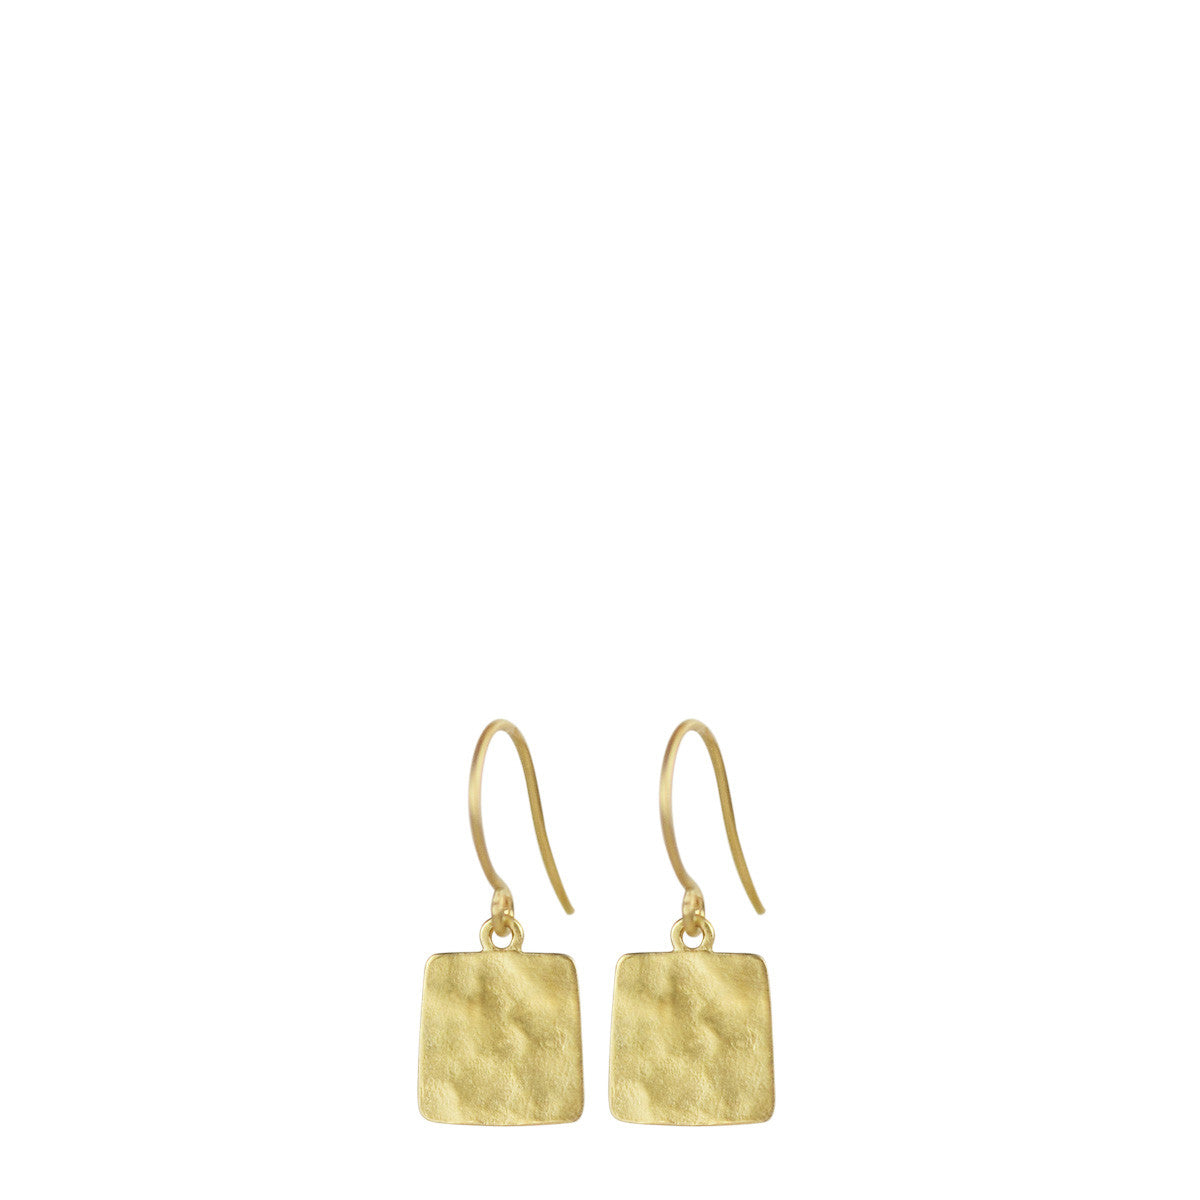 18K Gold Tiny Sequin Square Earrings